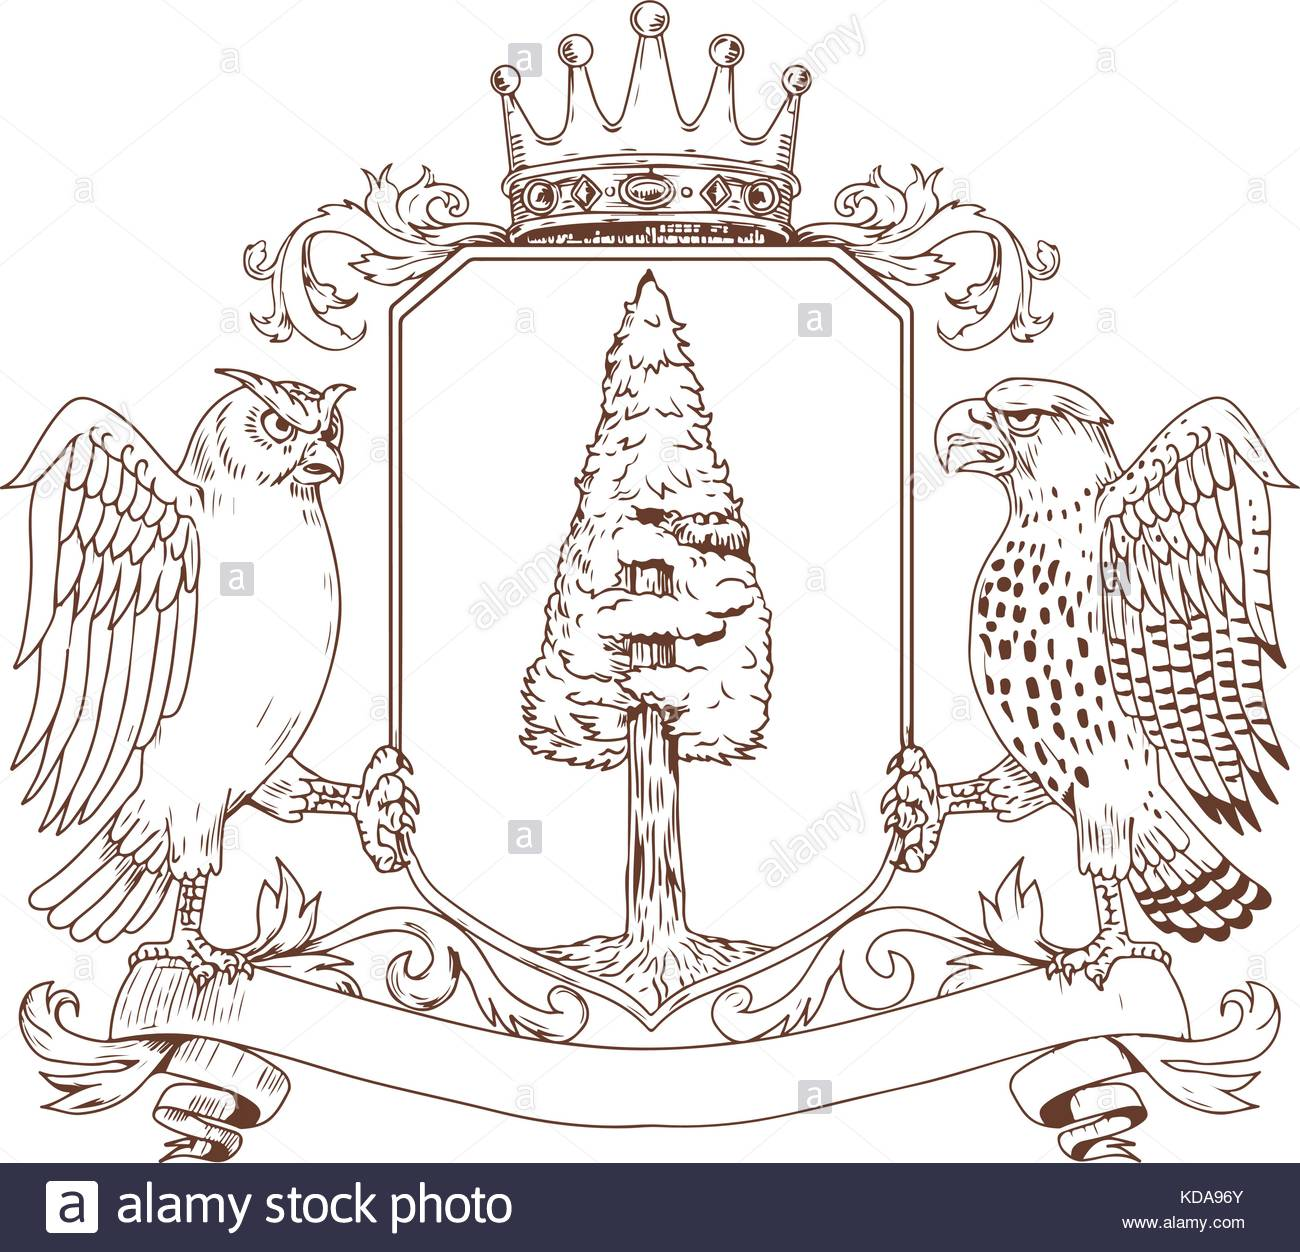 1300x1252 Drawing Sketch Style Illustration Of Coat Of Arms Showing An Owl